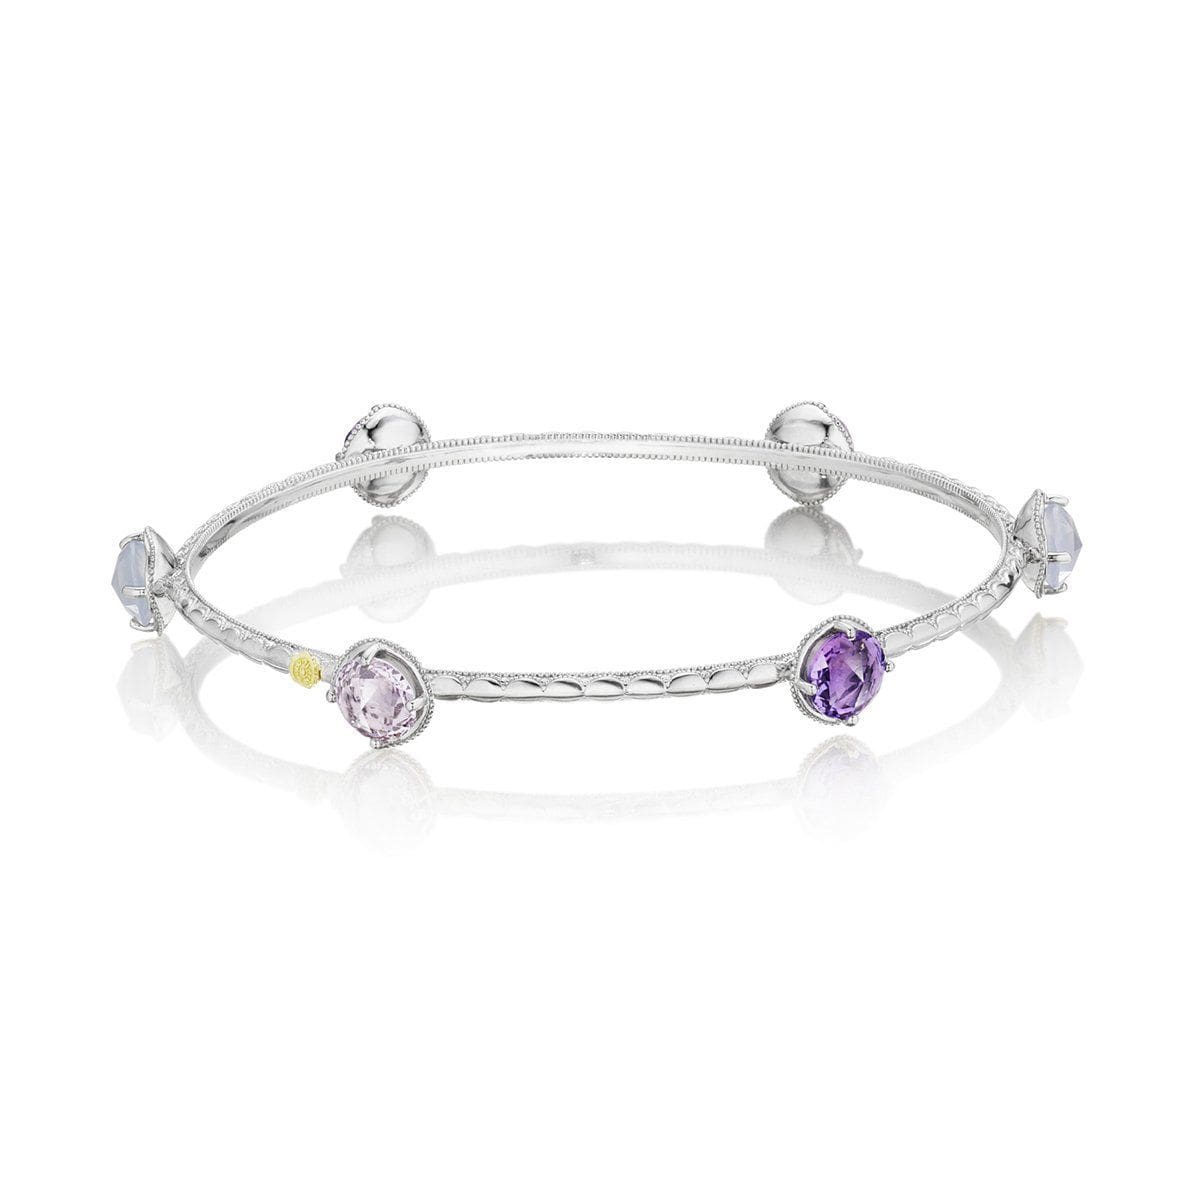 Silver Round Multi Color Bangle - SB124130126-Tacori-Renee Taylor Gallery